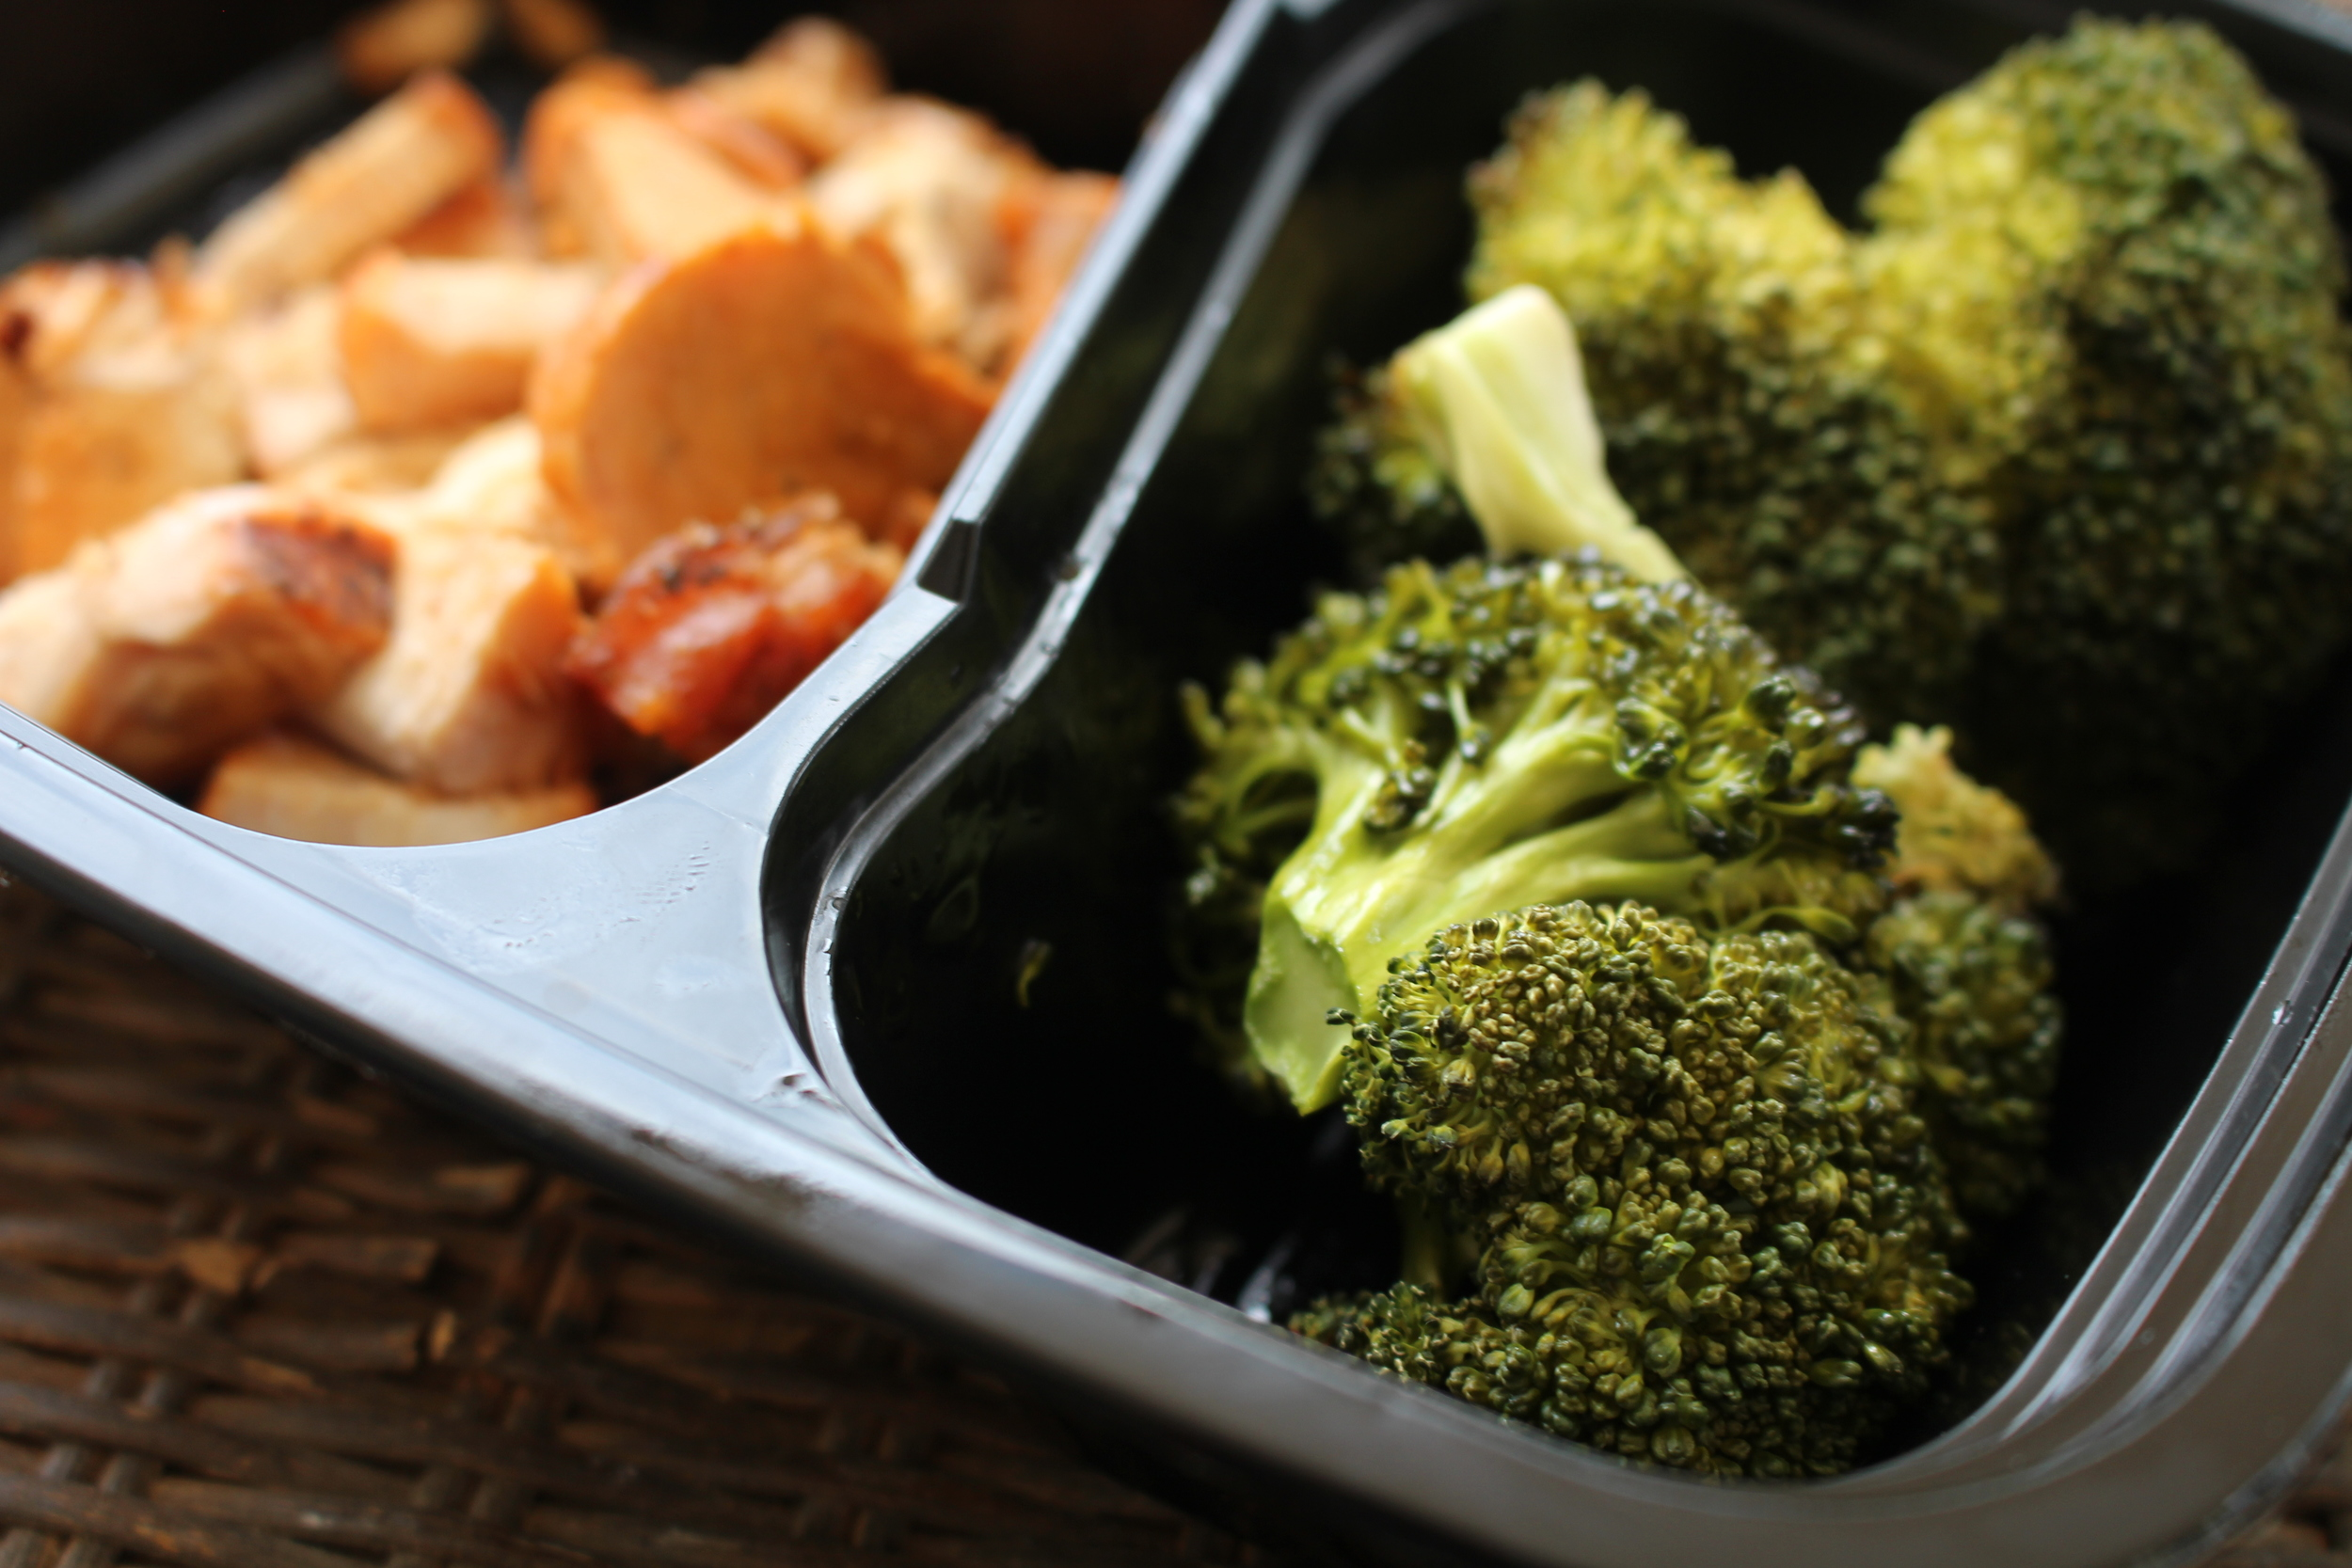 Lunch: Chicken and broccoli